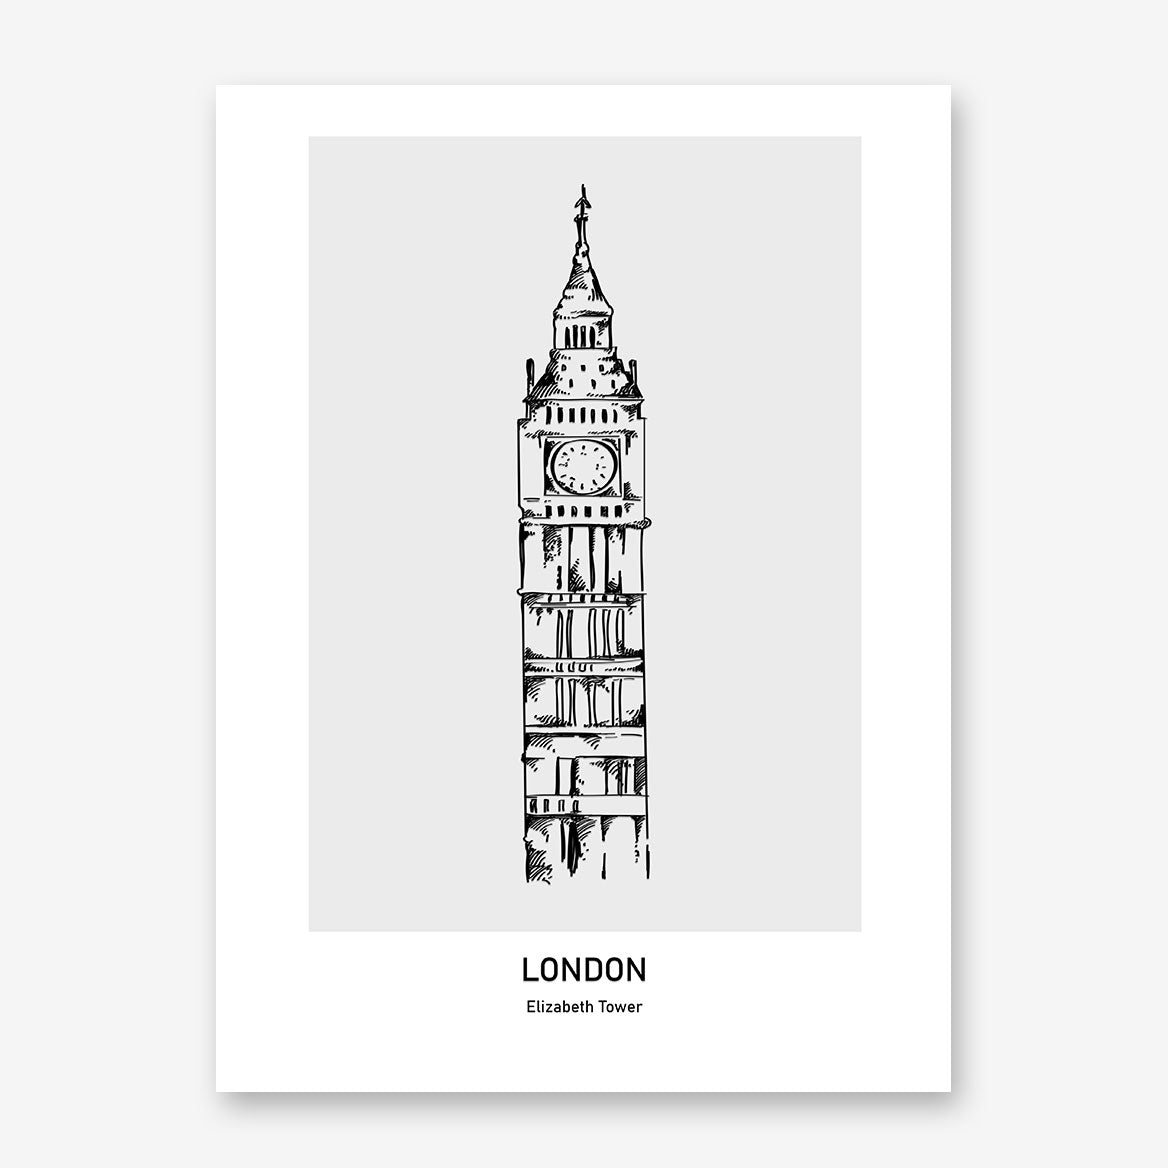 Doodle inspired poster print with drawing and text - London, Elizabeth Tower.